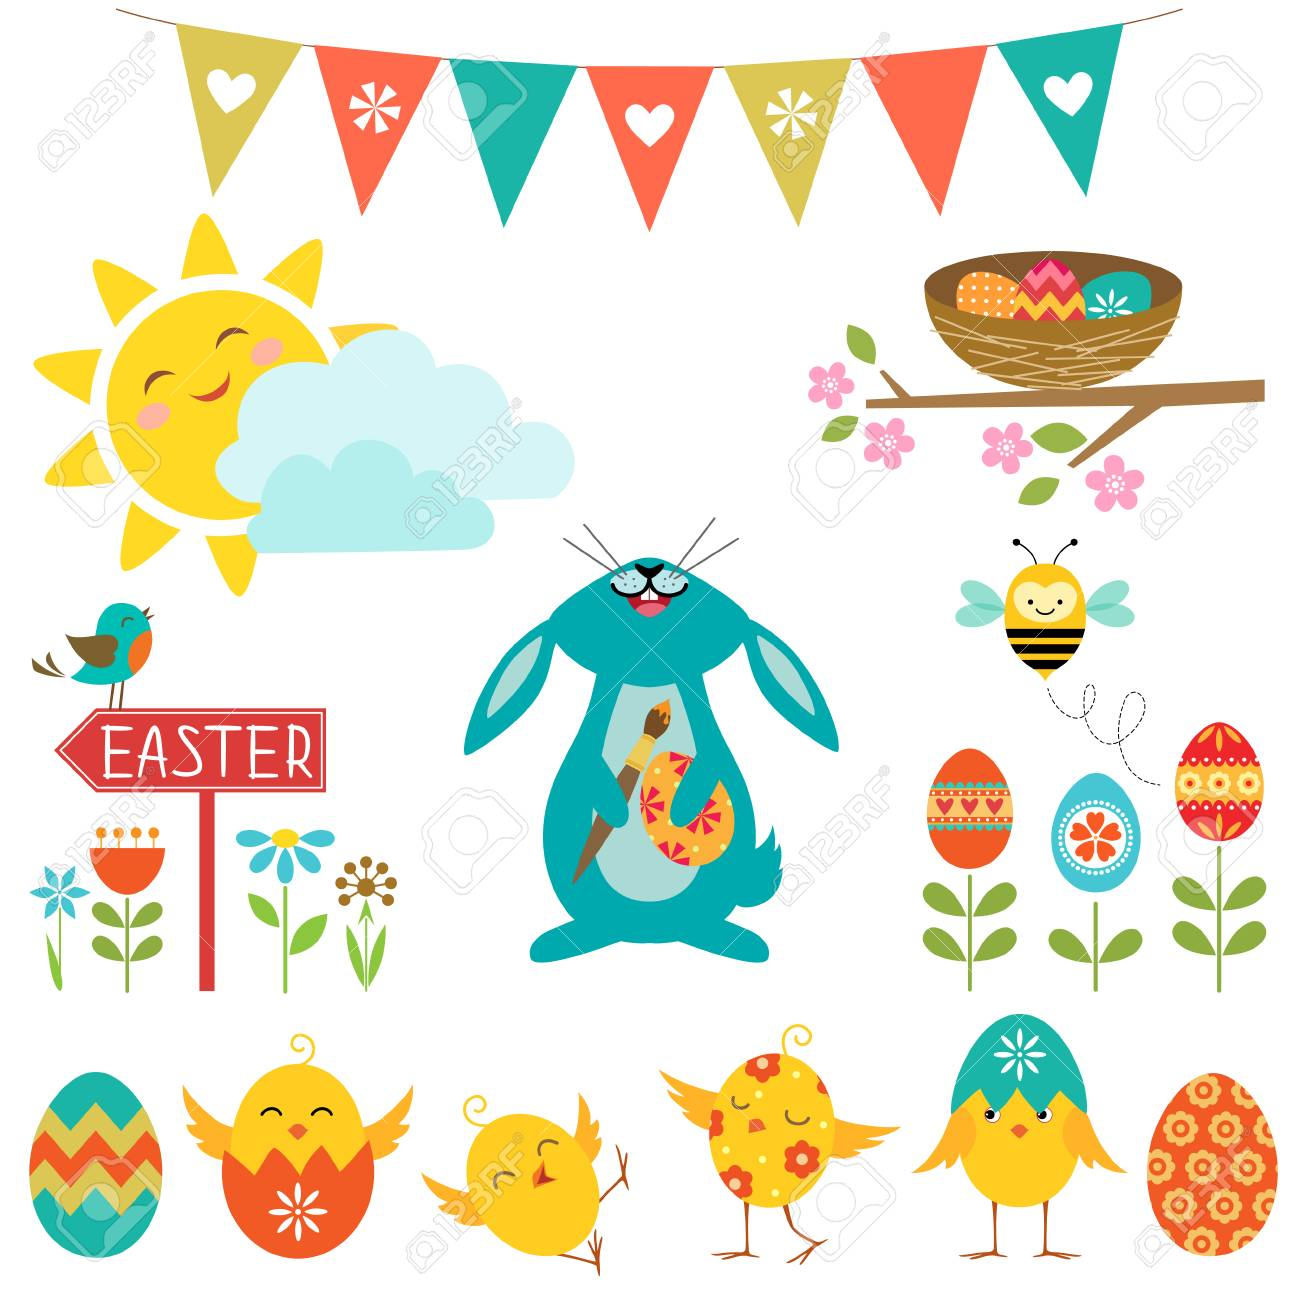 Set of cute elements for Easter design. - 26319045